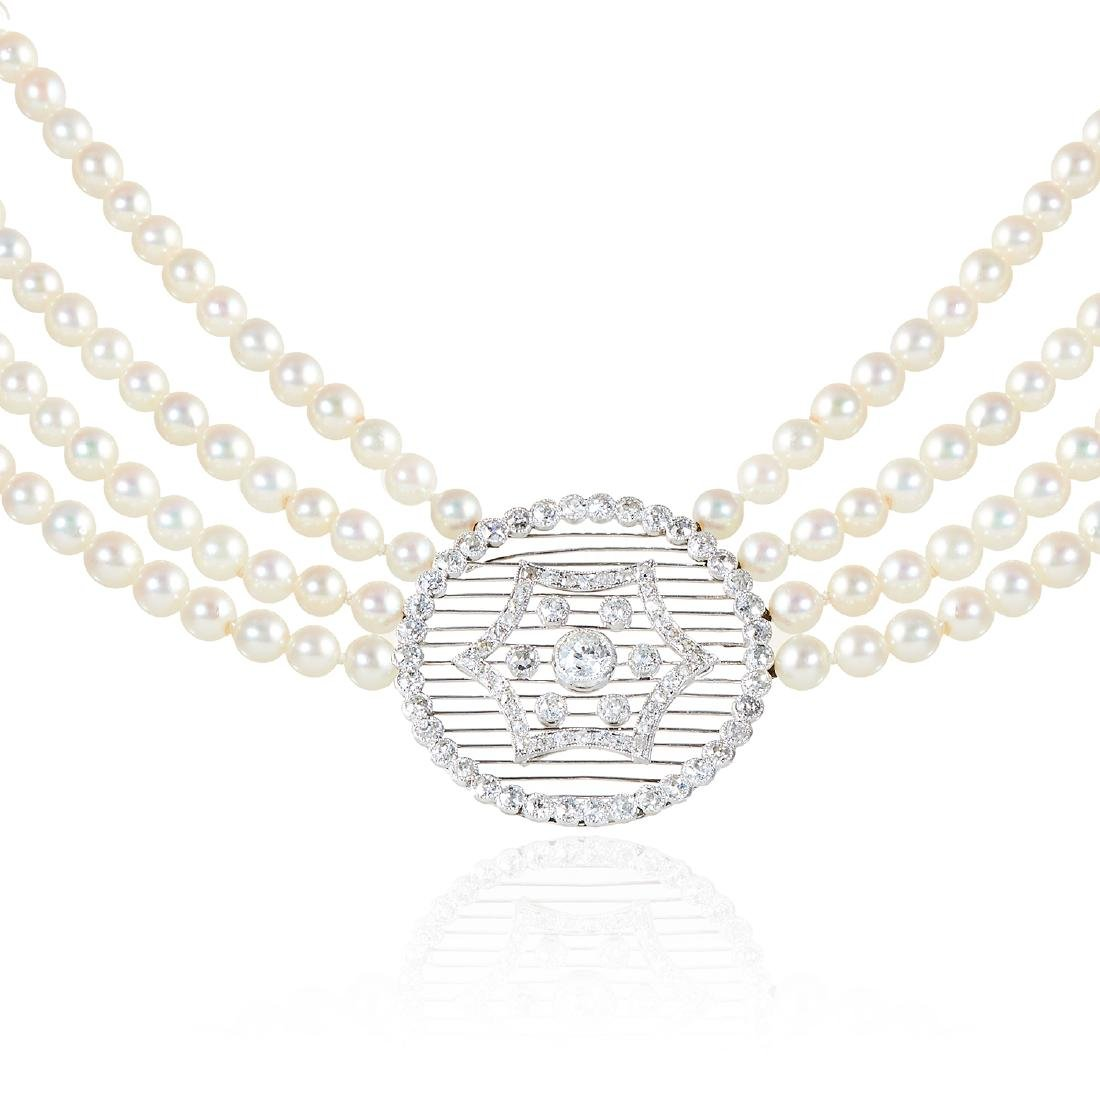 AN ANTIQUE PEARL AND DIAMOND NECKLACE in platinum or